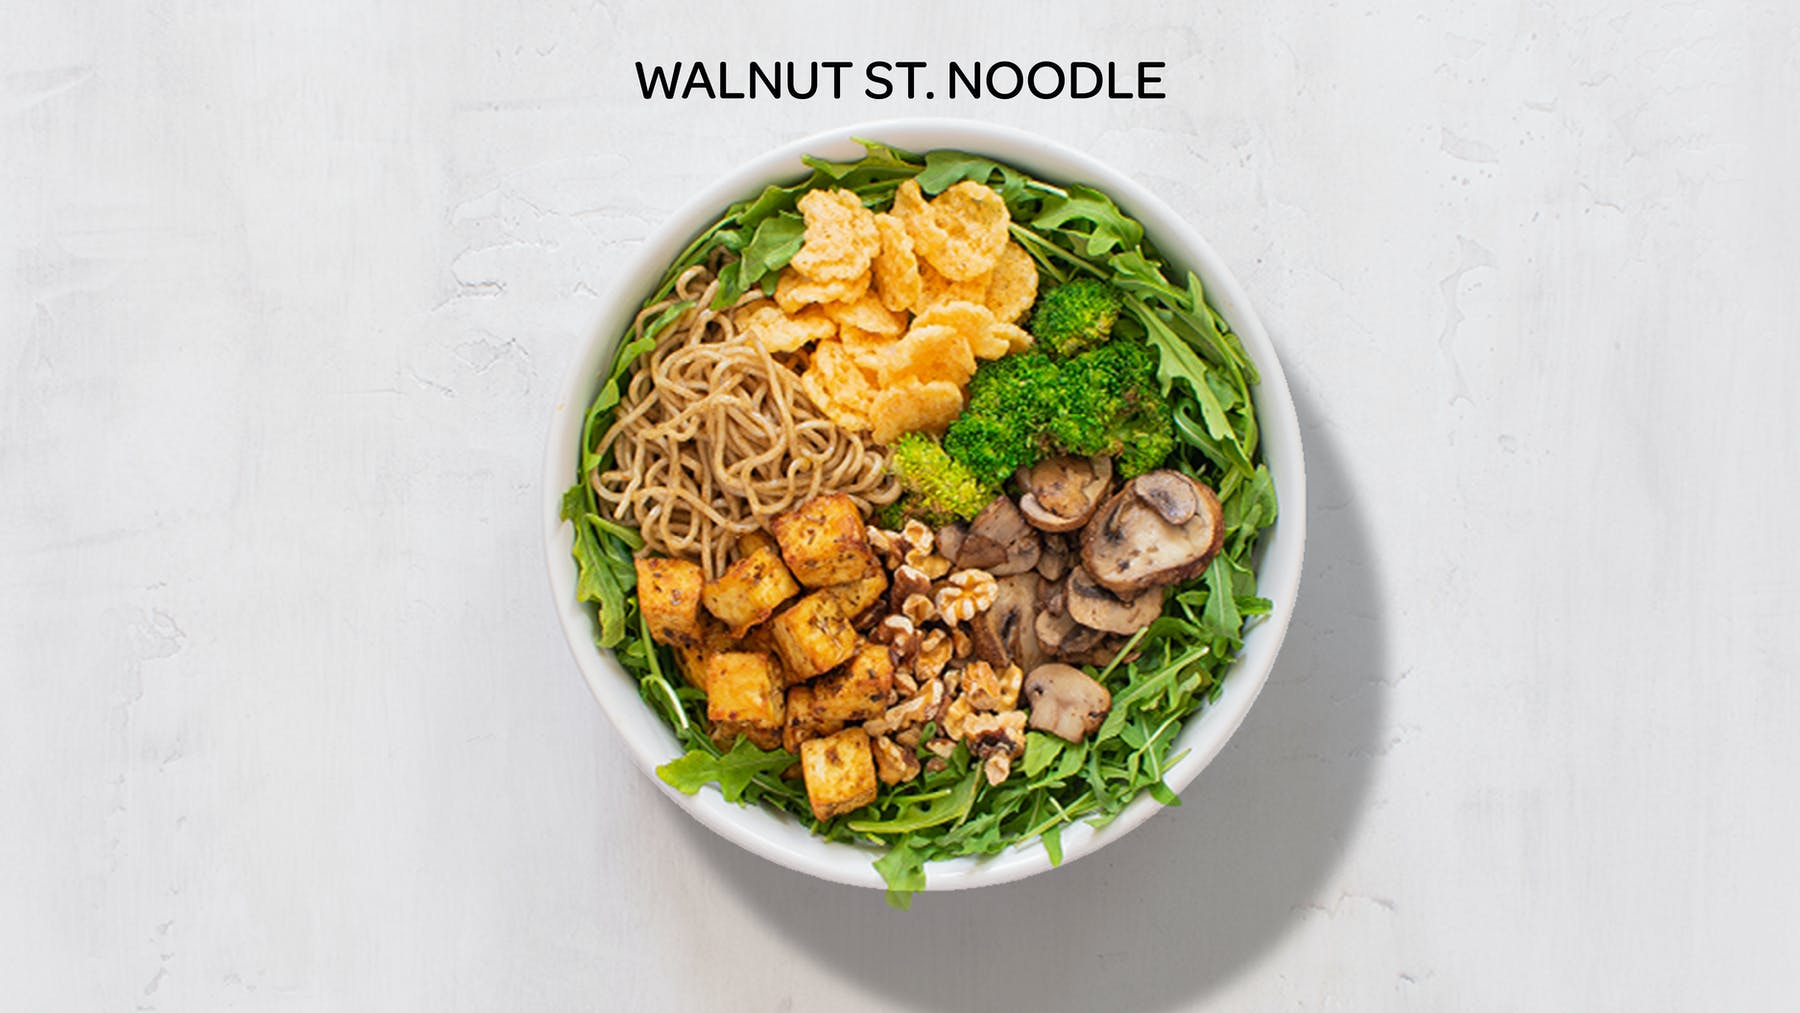 a bowl of walnut st. noodle salad